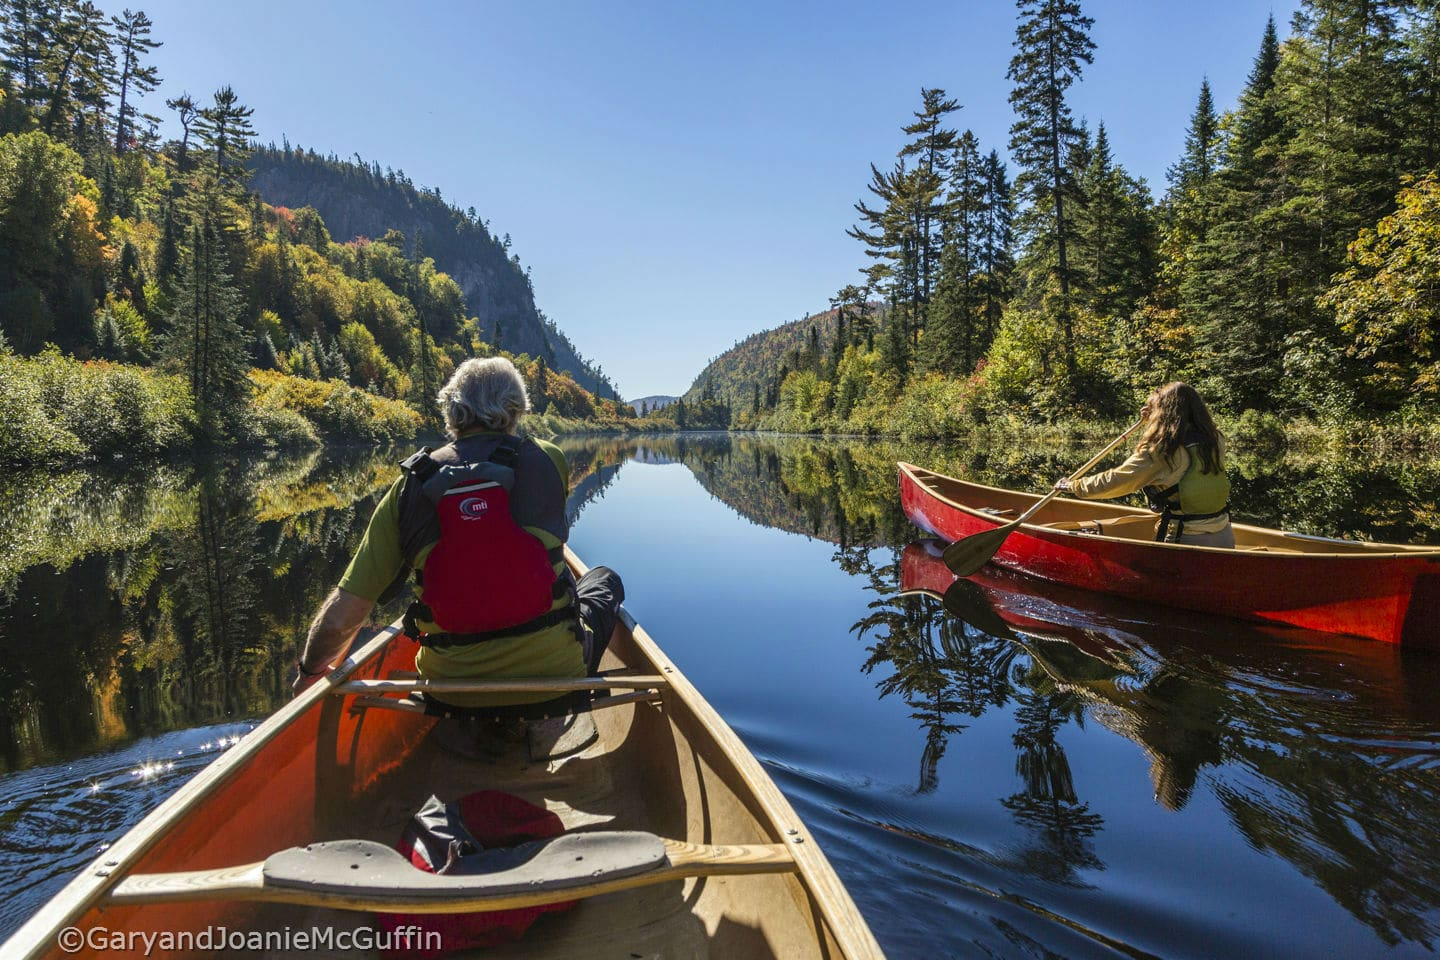 Two people canoeing on calm river in Northern Ontario